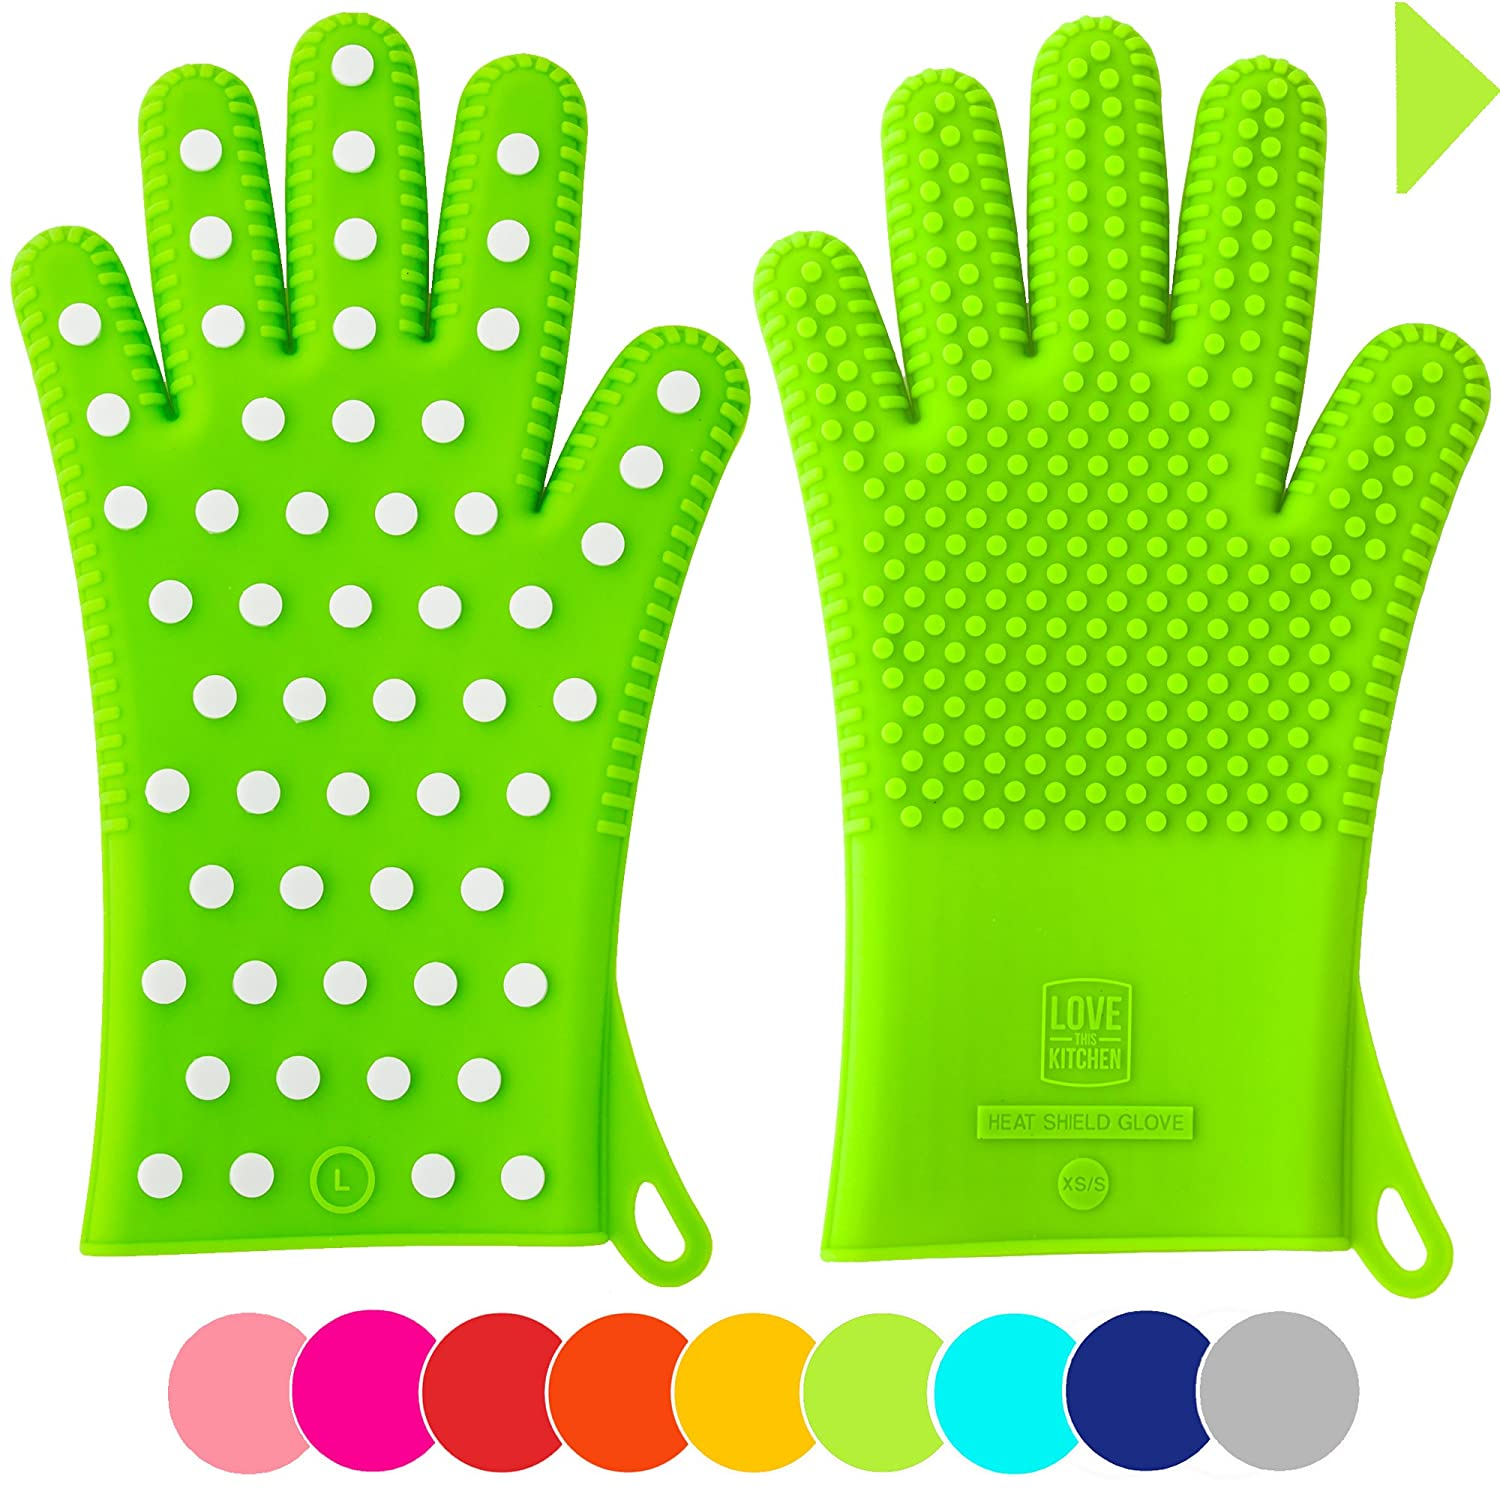 Lime green oven mitts